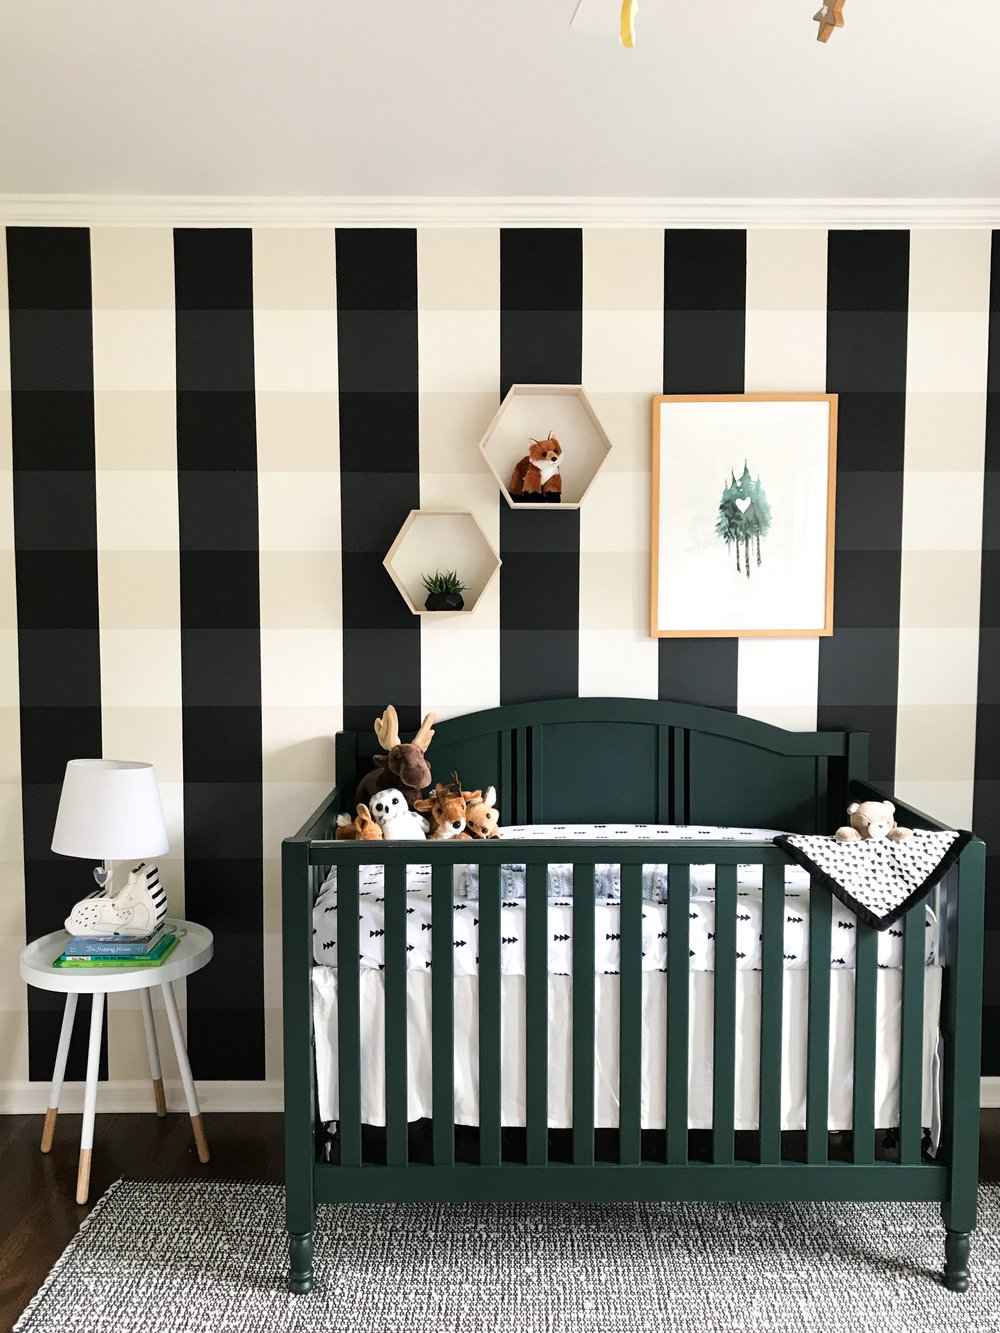 Buffalo Plaid Nursery Wall Using Benjamin Moore Paint. Lumber Jack, Outdoor, Adventure, Northwoods, Woodland Animal Nursery Decor and Design Ideas.